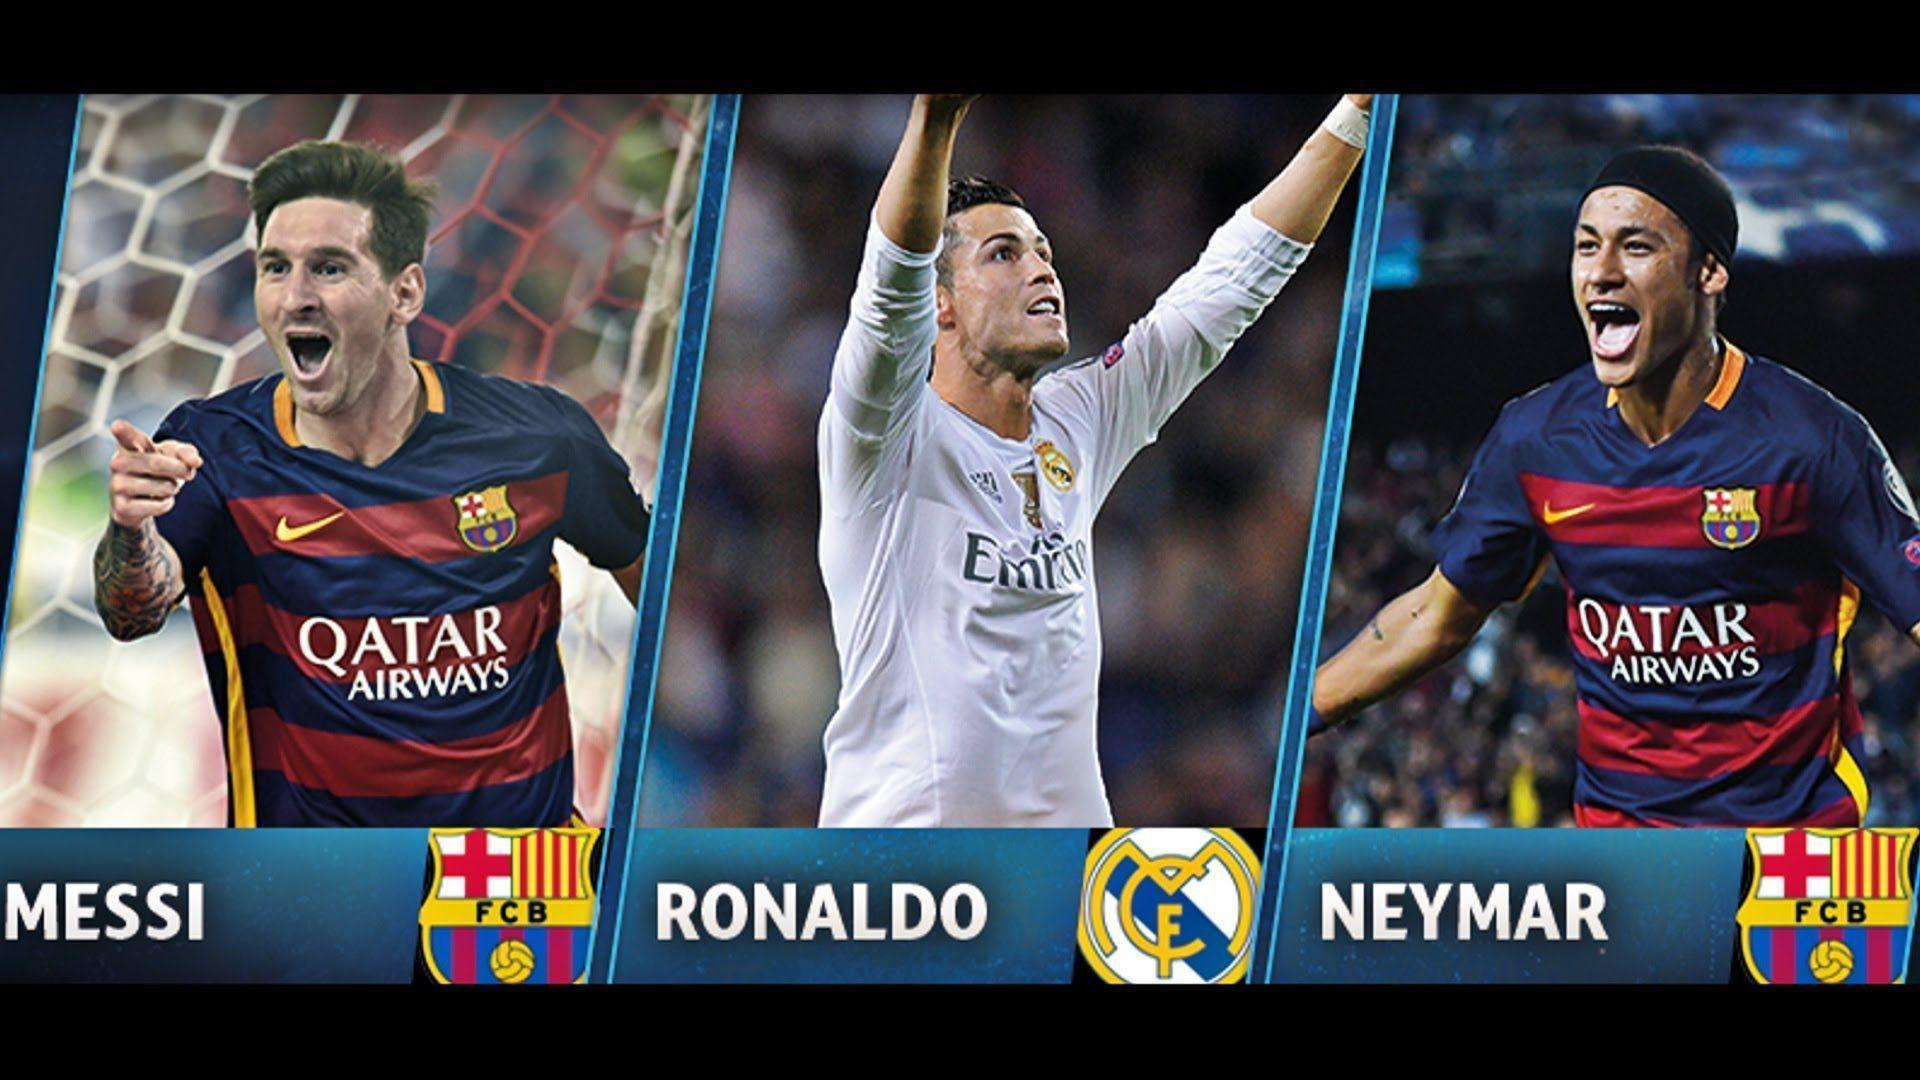 Messi Vs Ronaldo 2016 Wallpapers - Wallpaper Cave